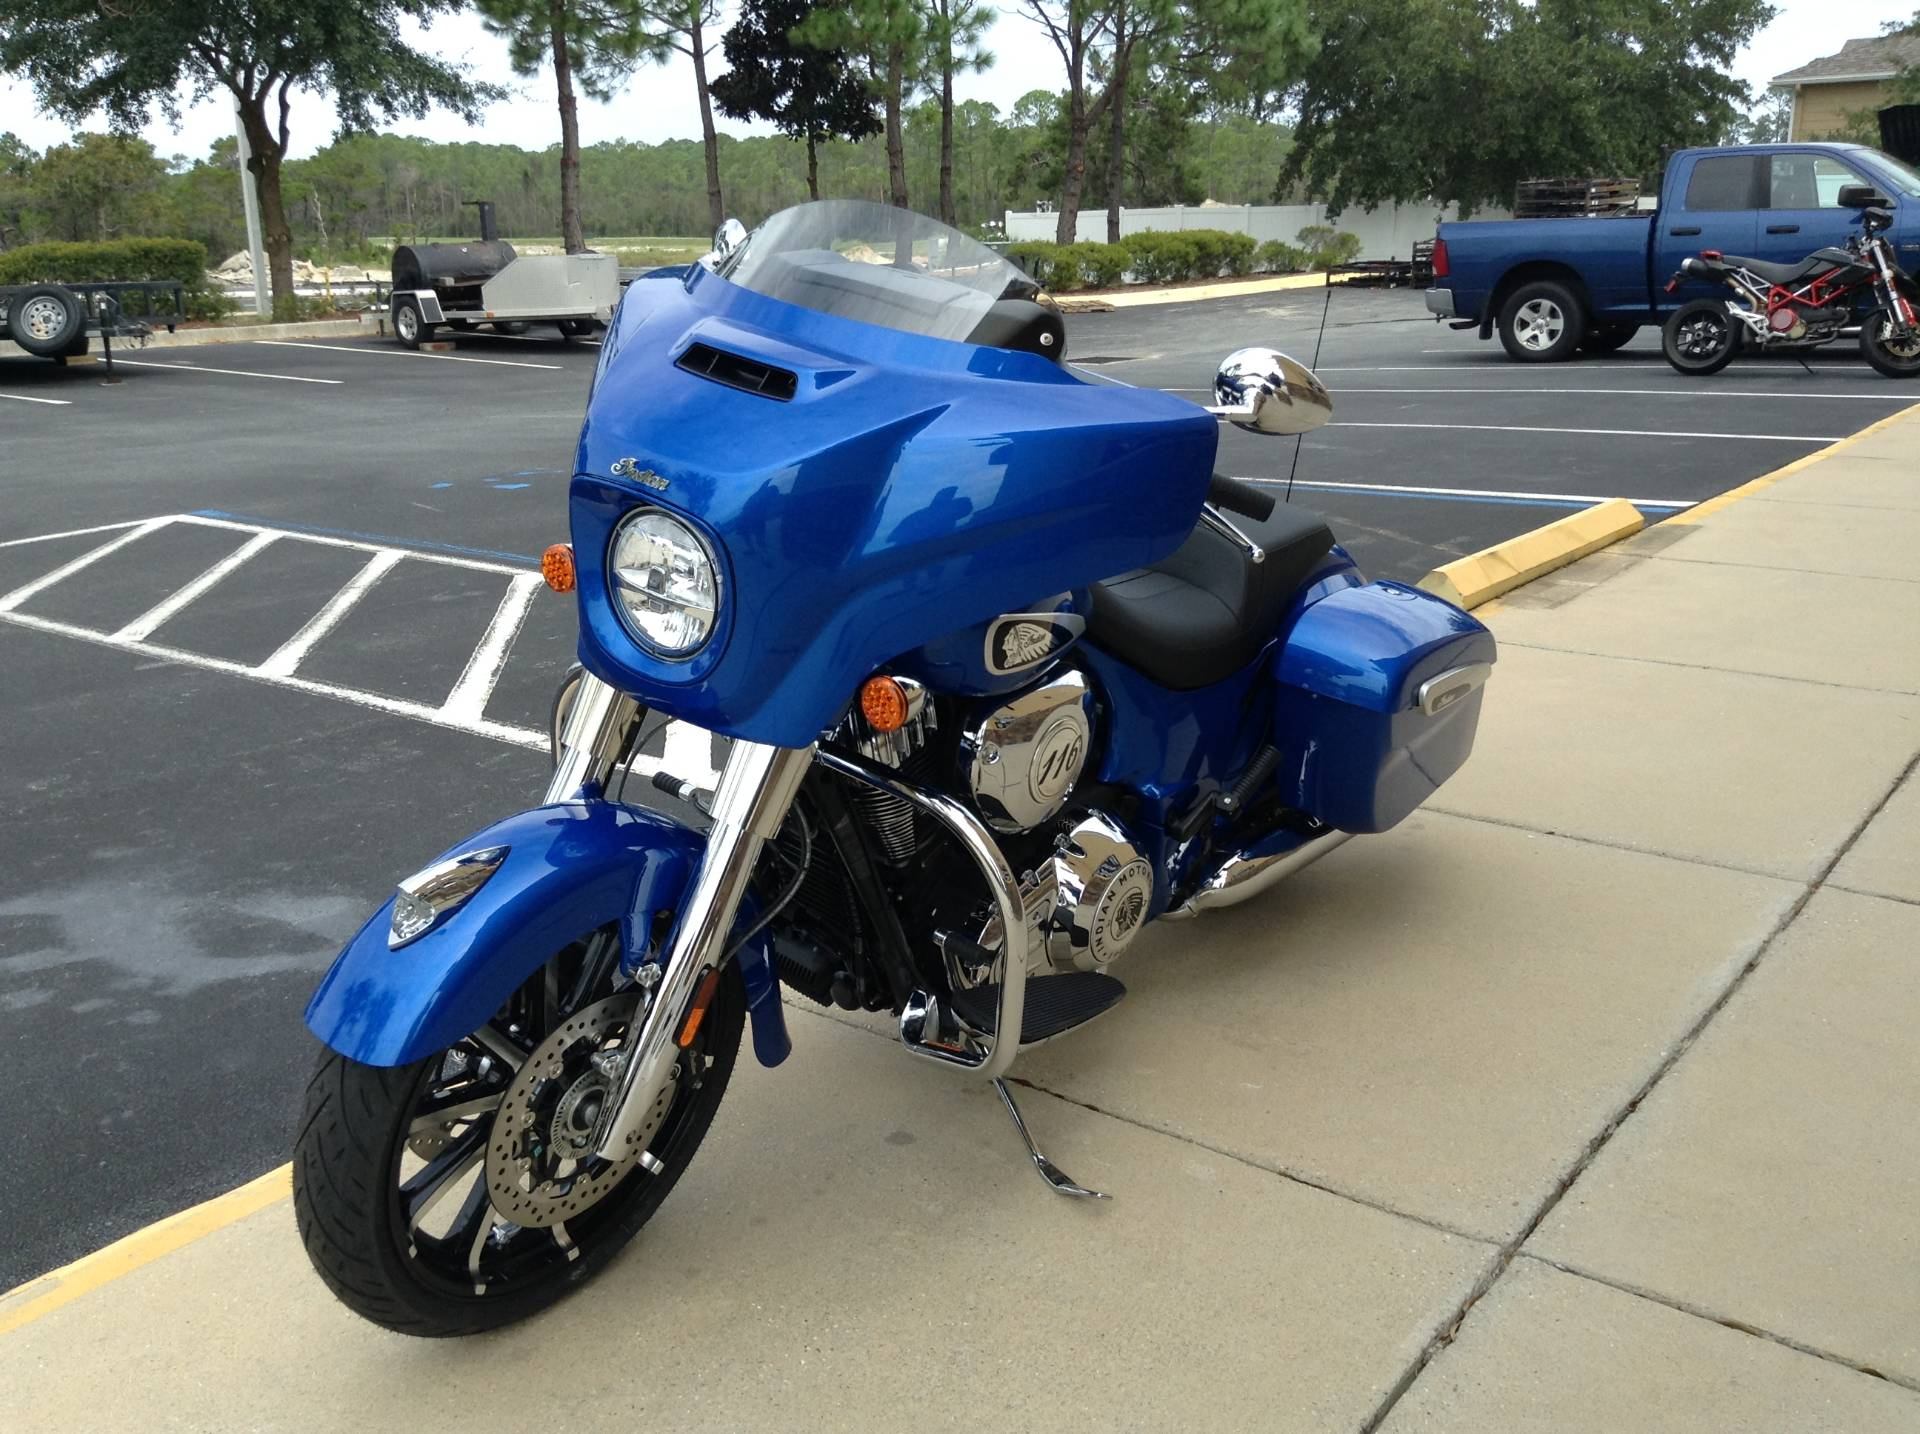 2021 Indian CHIEFTAIN LIMITED in Panama City Beach, Florida - Photo 13